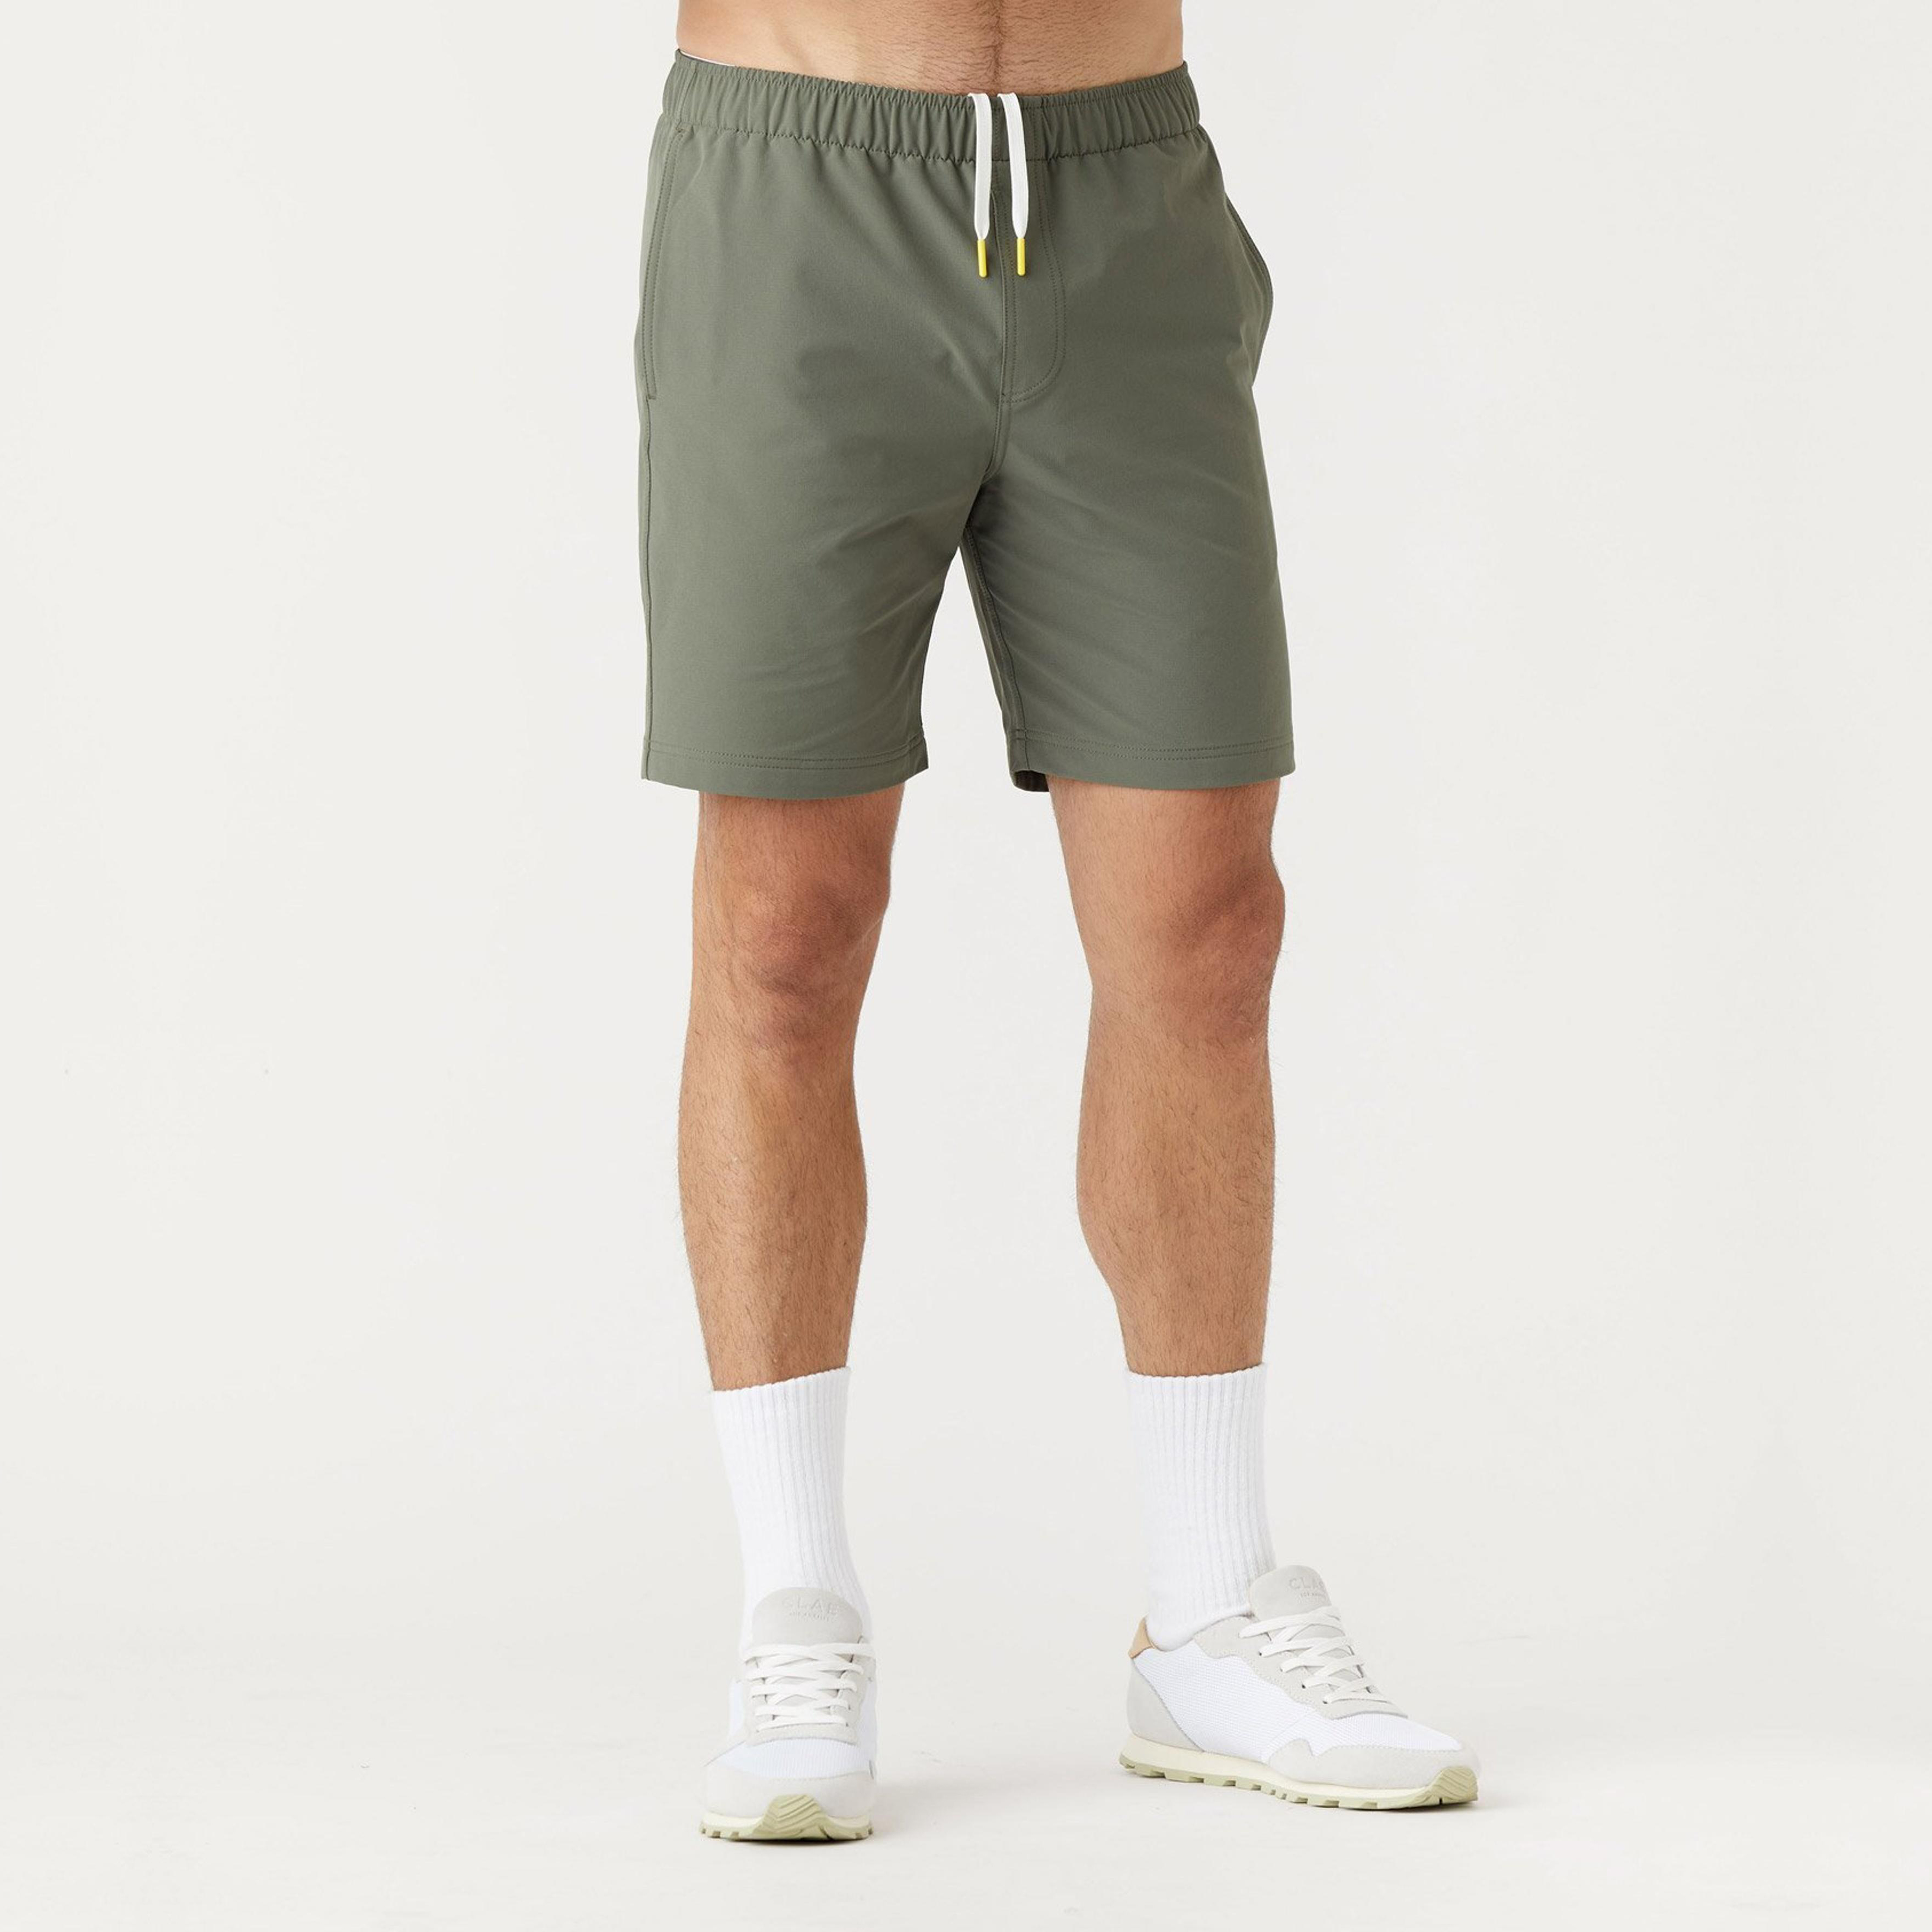 All Over Short in Olive